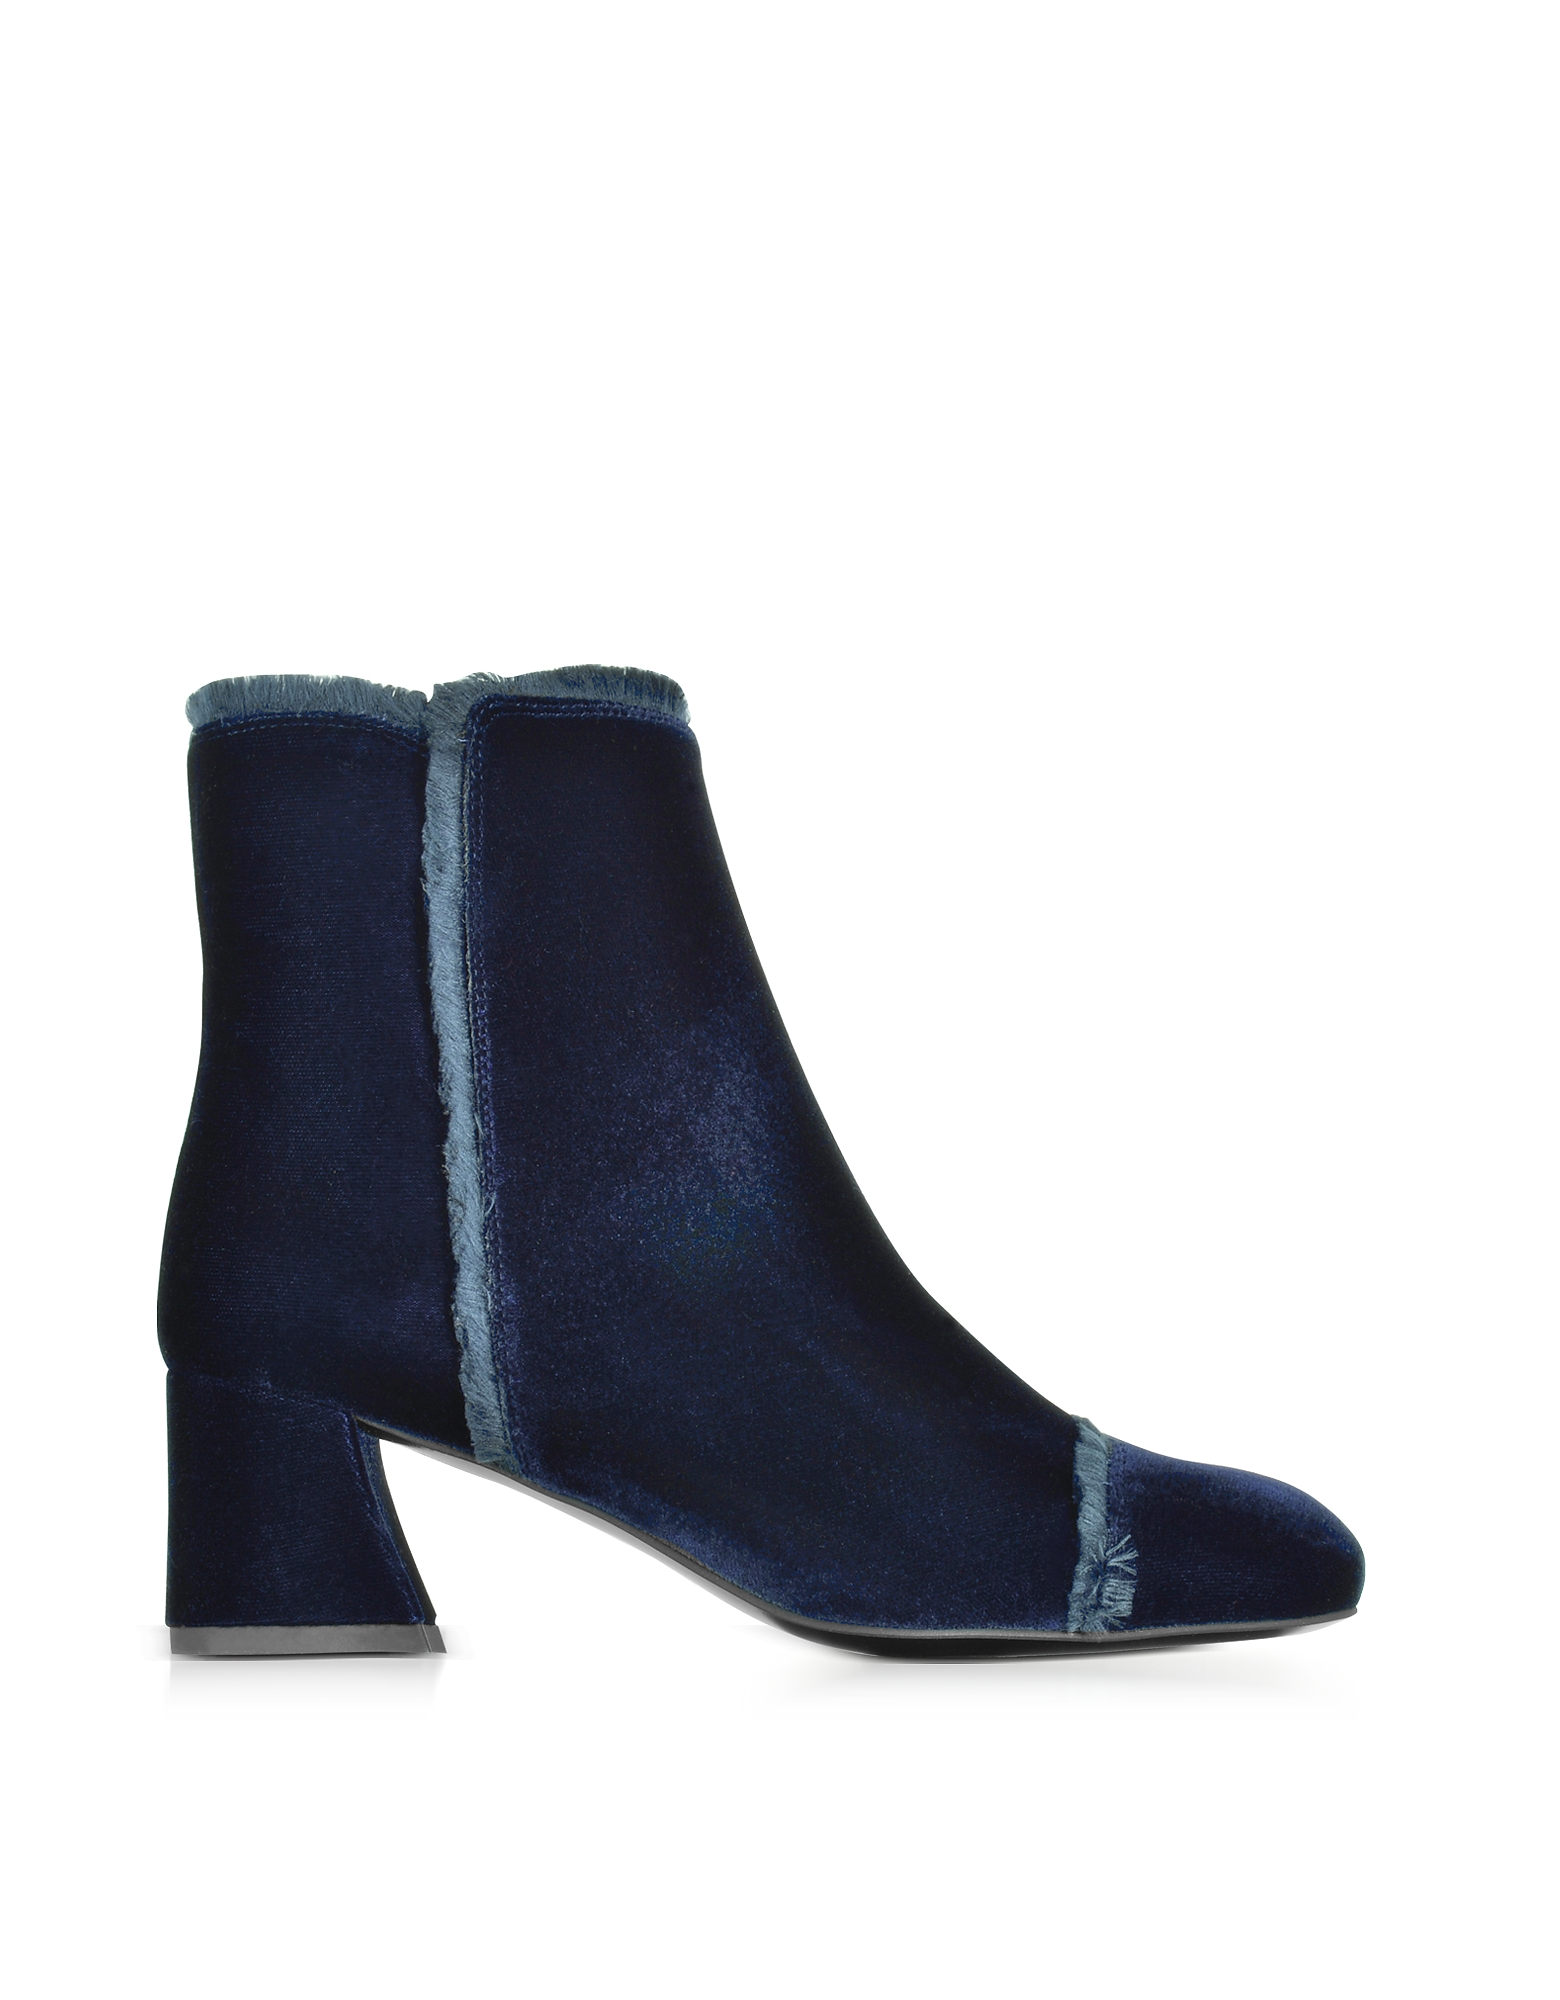 Stuart Weitzman Shoes, Onthefringe Navy Blue Velvet Mid Heel Booties